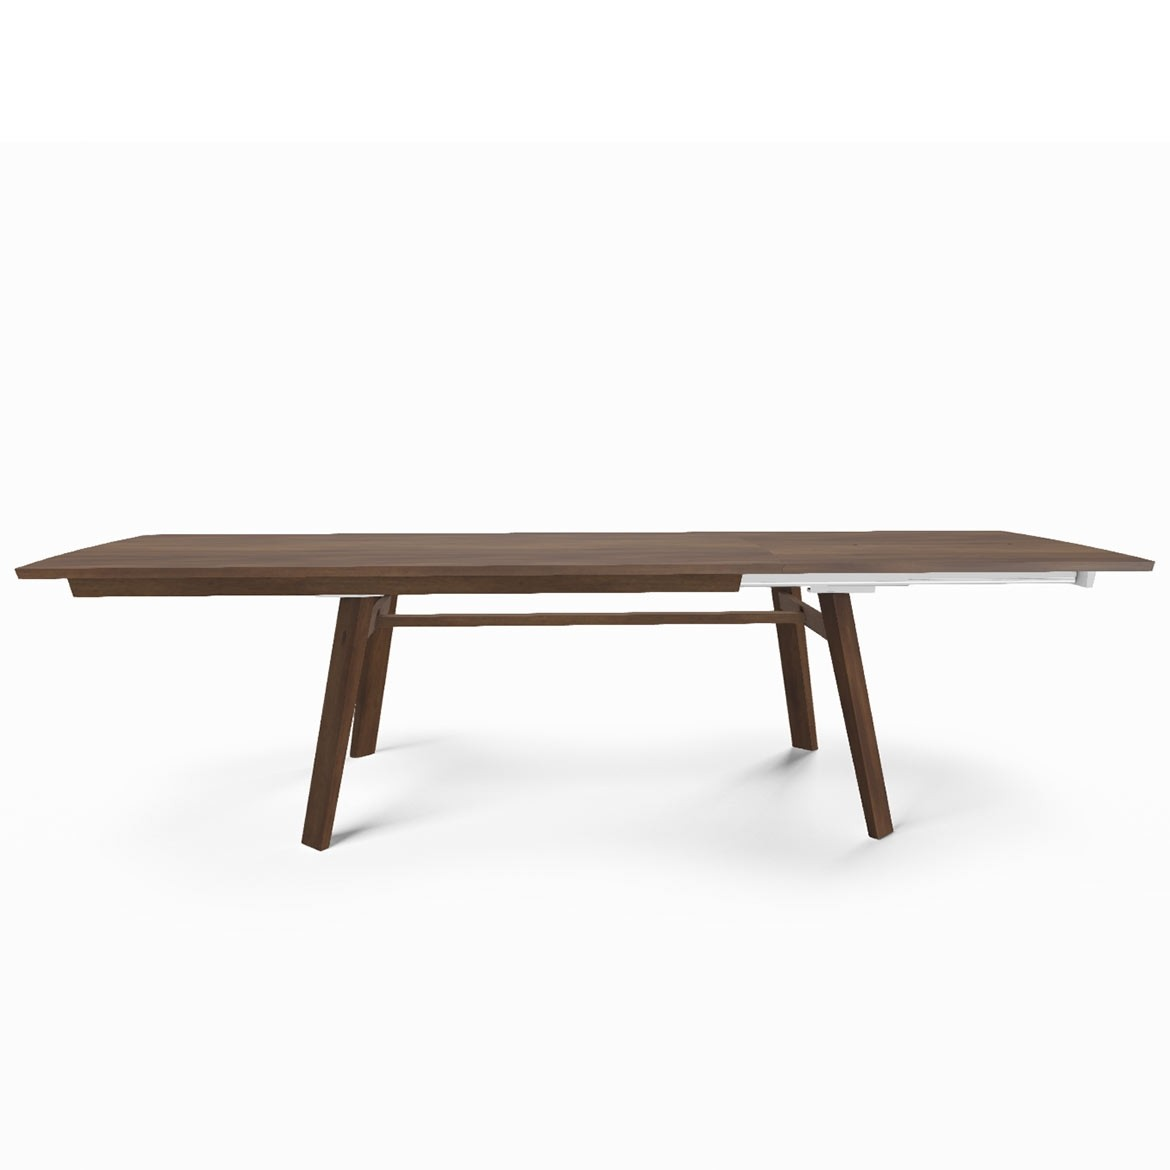 Tate walnut extending dining table